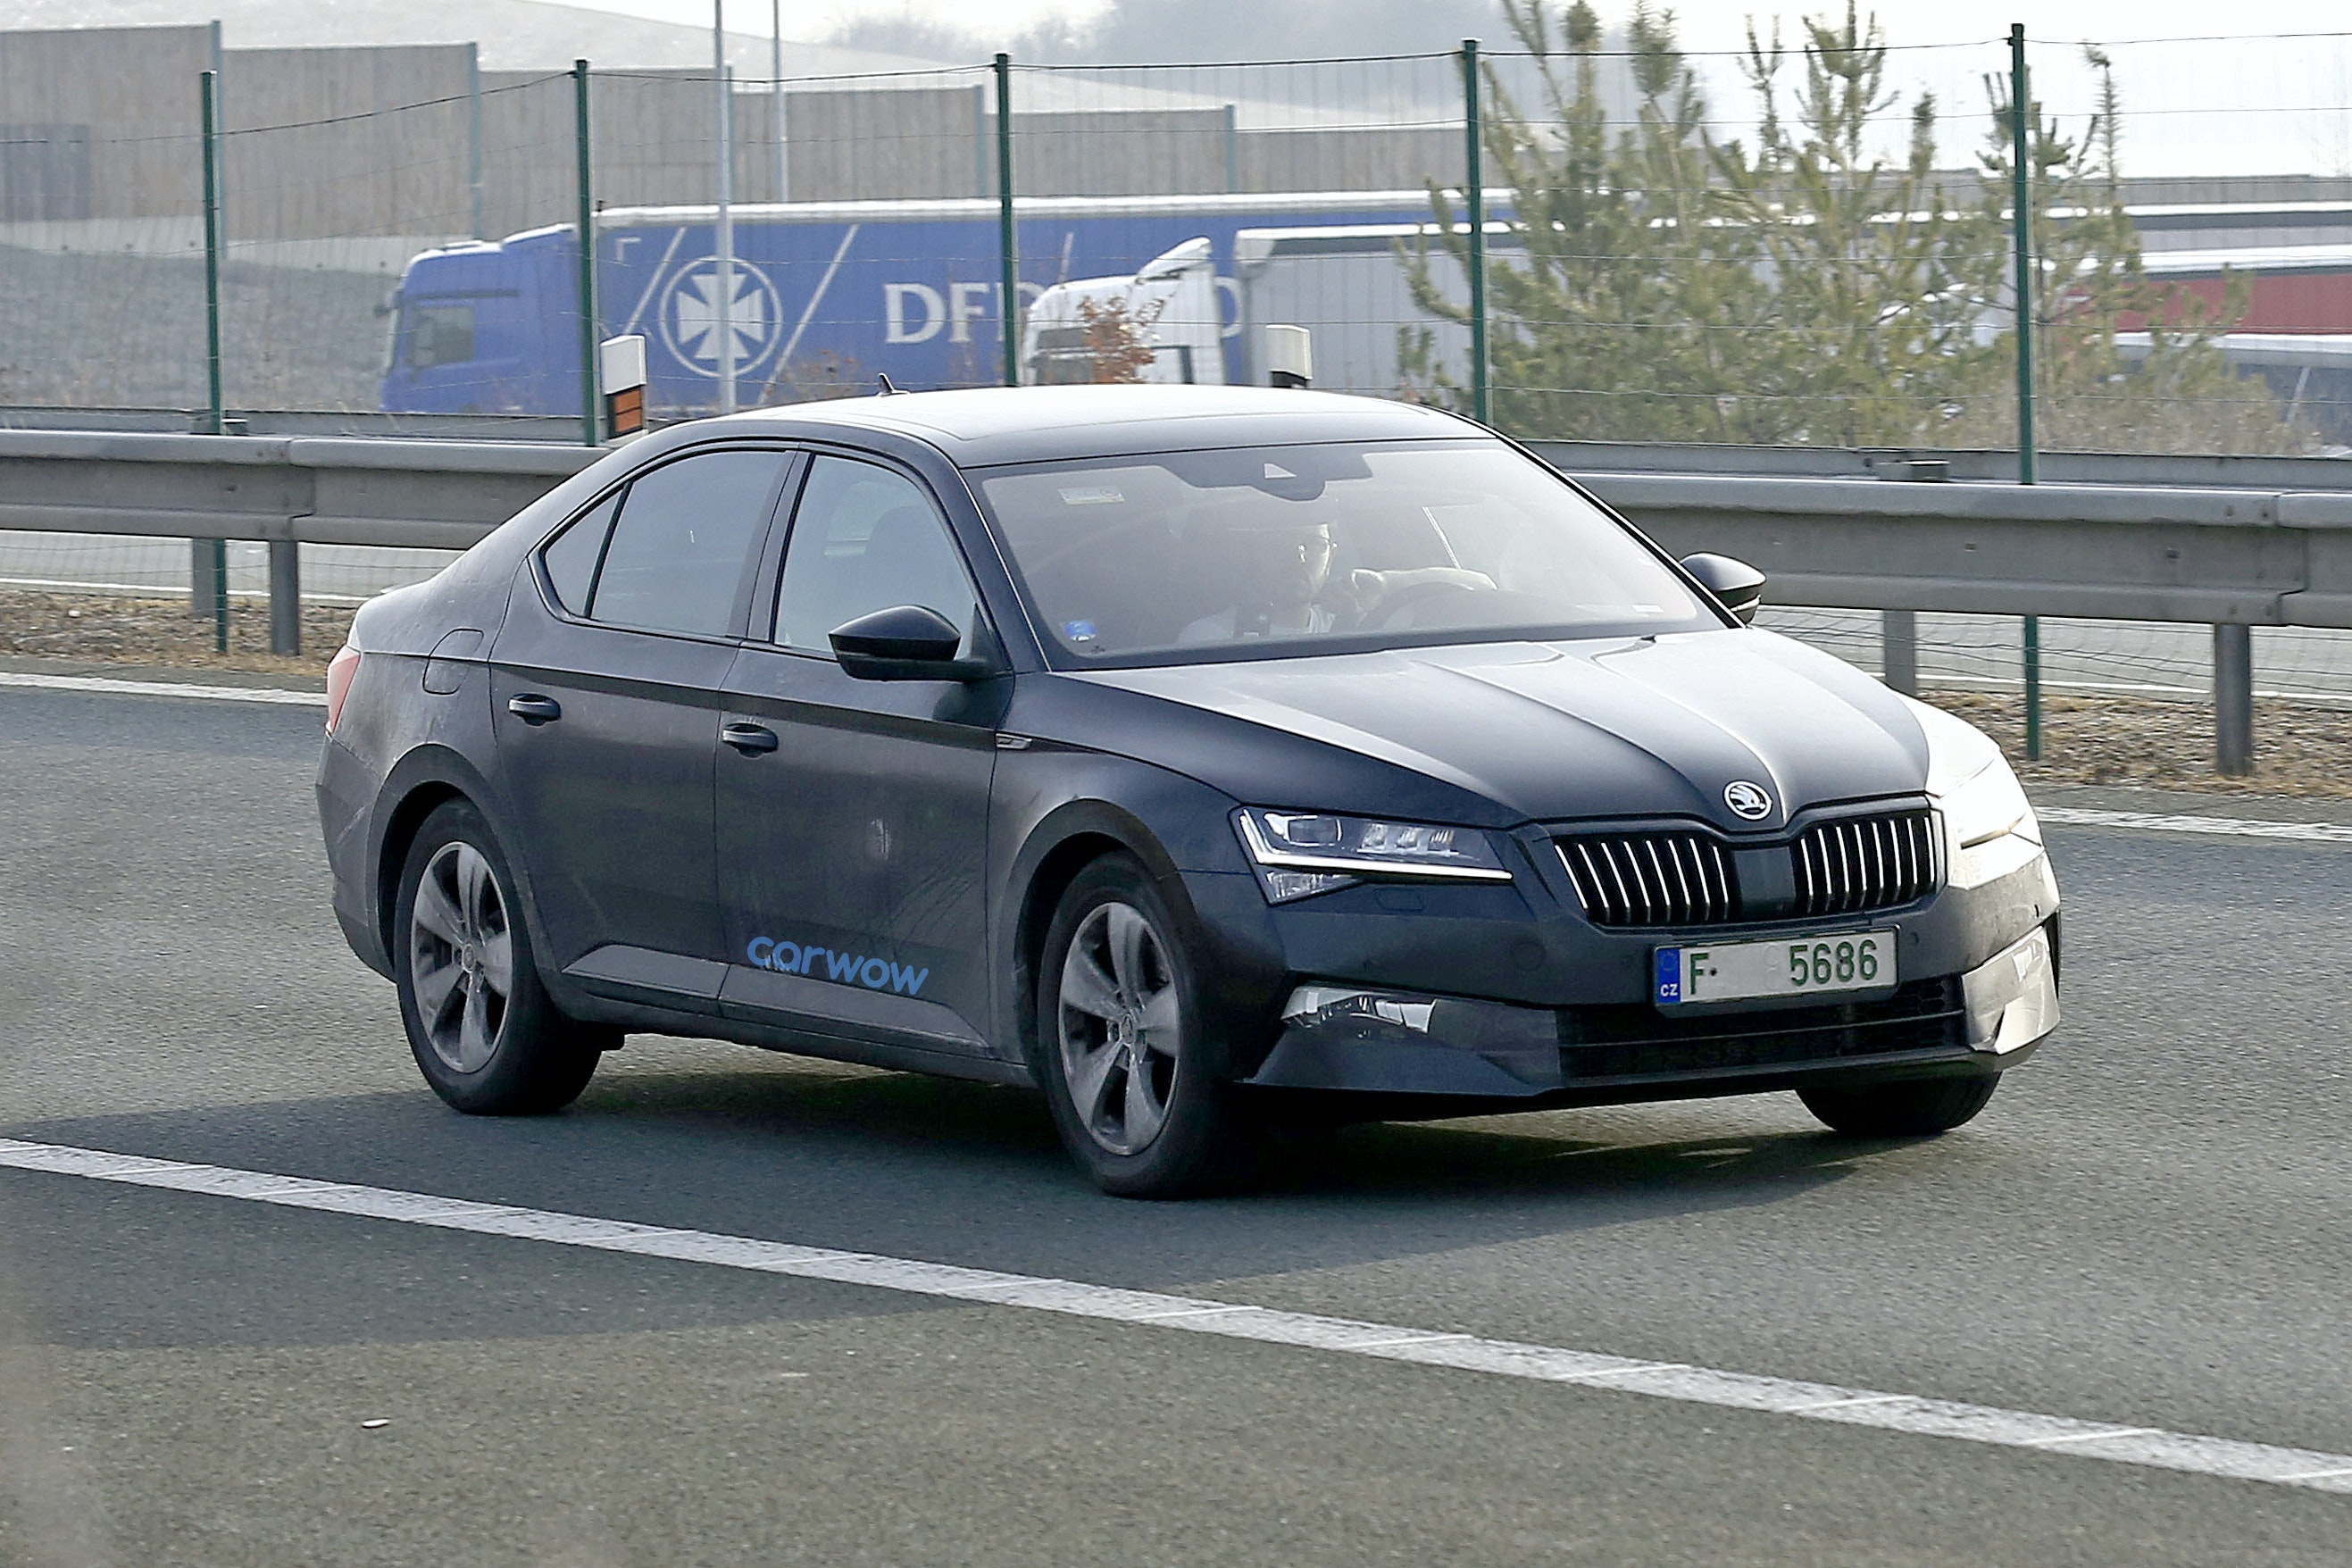 2019 skoda superb facelift price, specs and release date | carwow